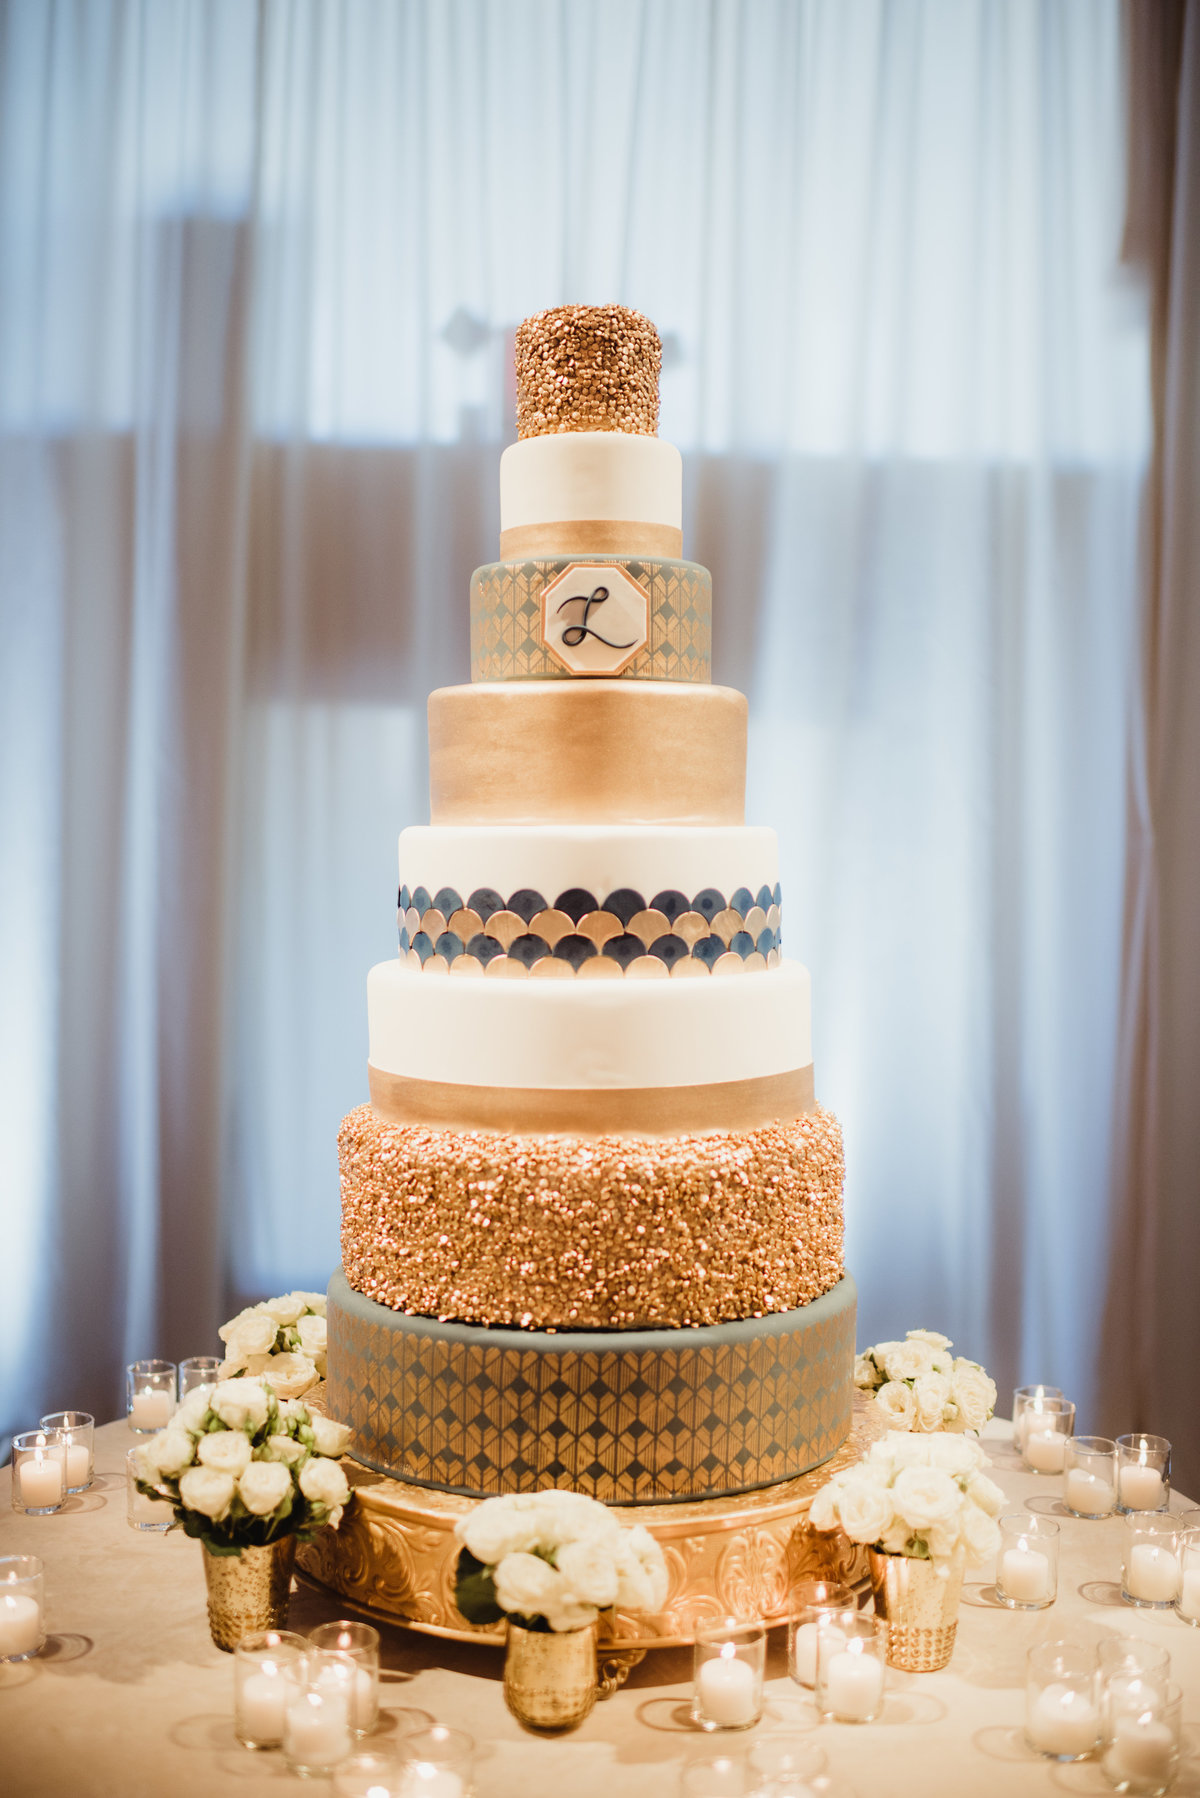 wedding cake, tiered wedding cake